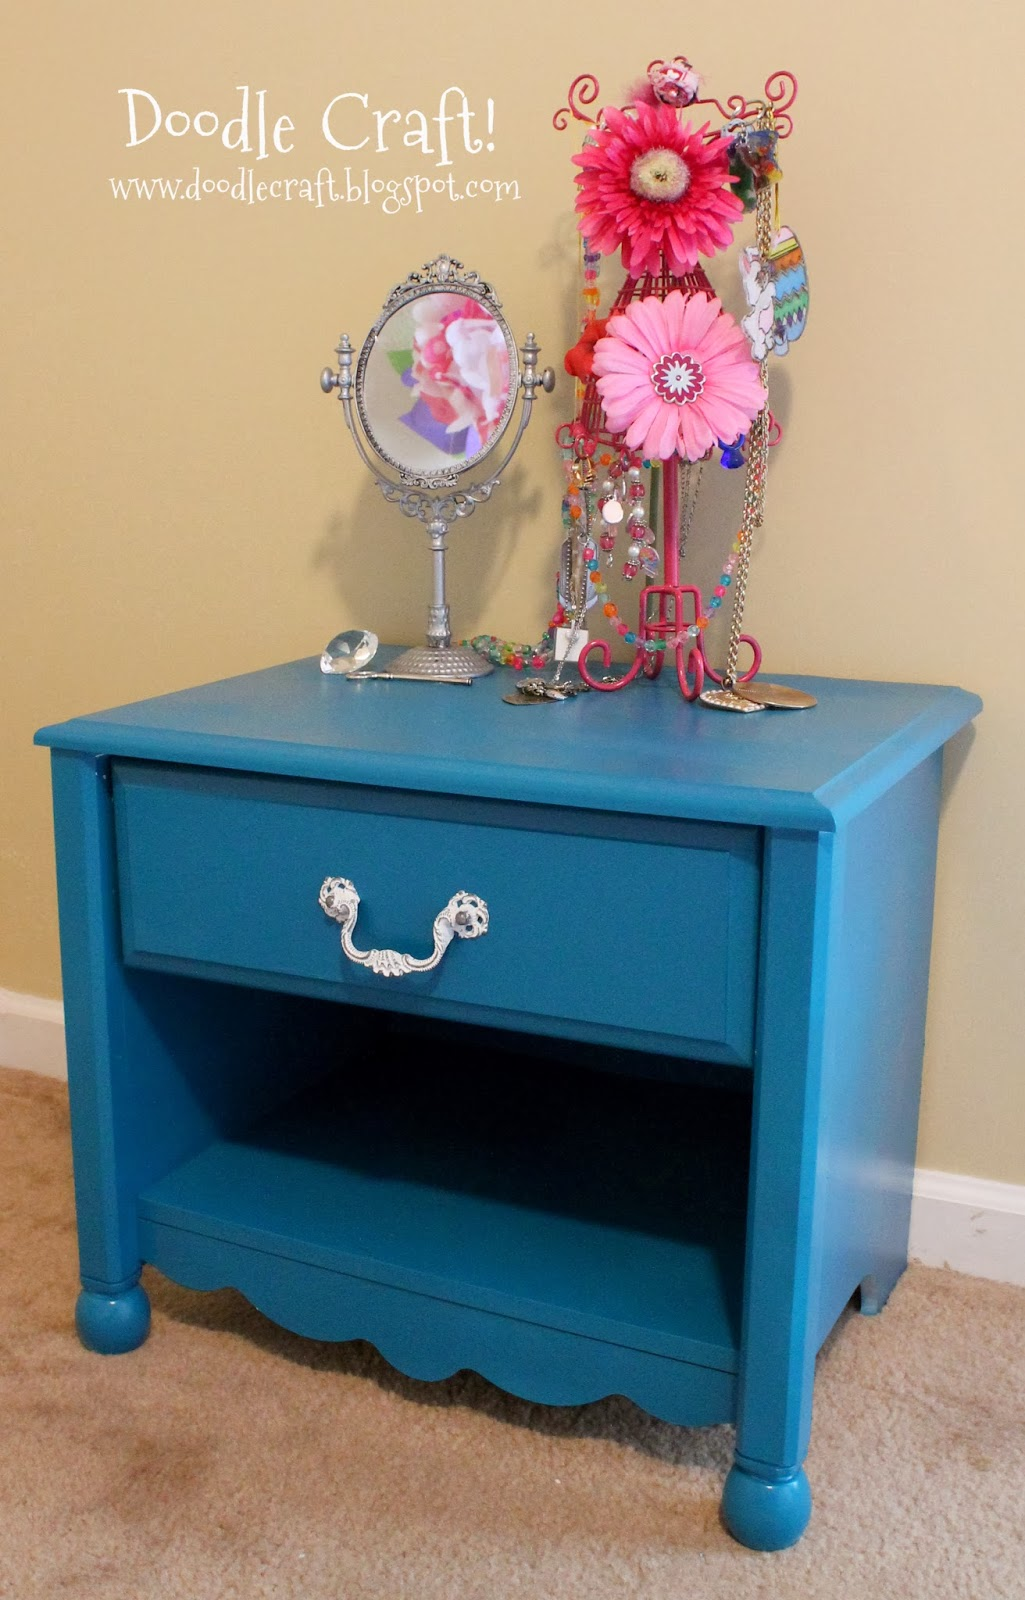 http://www.doodlecraft.blogspot.com/2012/06/short-scalloped-nightstand-redo.html